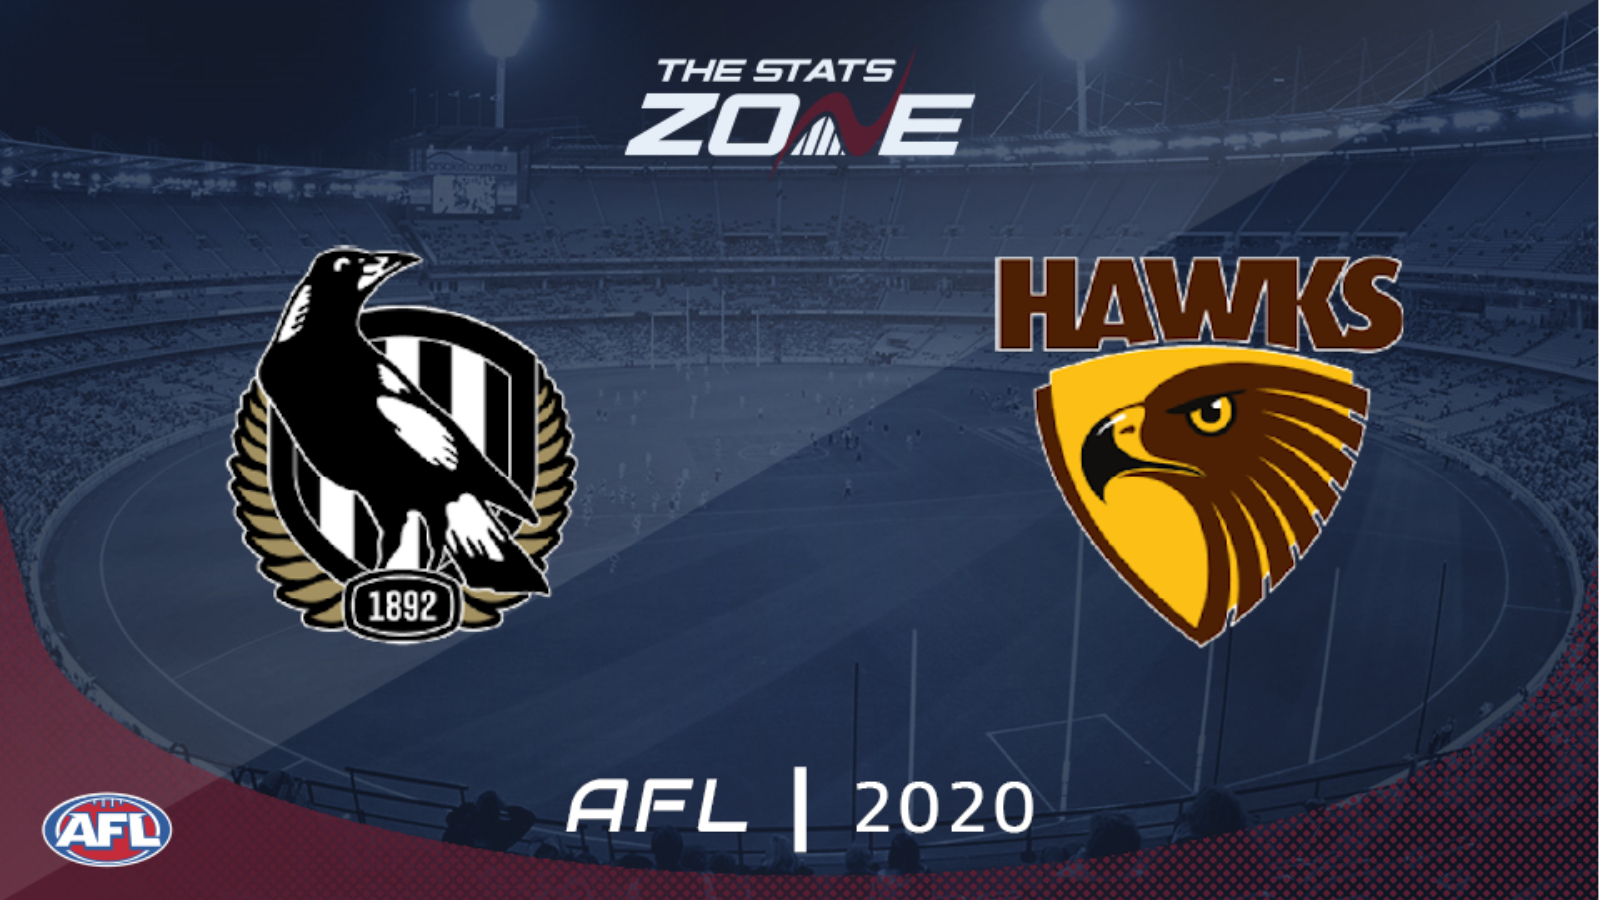 2020 Afl Collingwood Vs Hawthorn Preview Prediction The Stats Zone